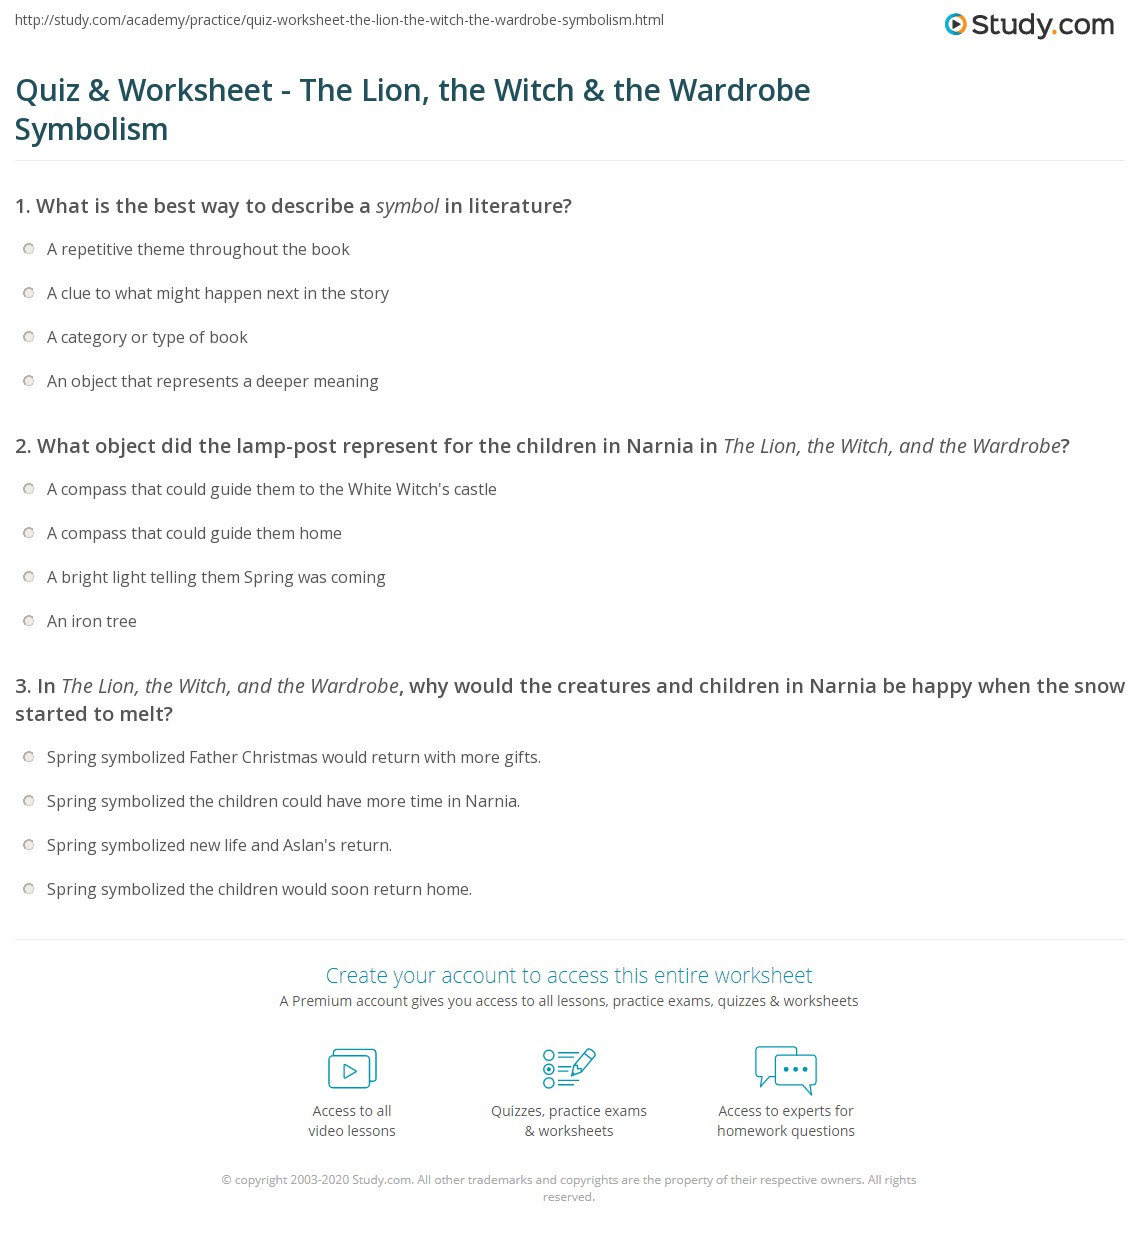 Symbolism Worksheets for Middle School Quiz & Worksheet the Lion the Witch & the Wardrobe